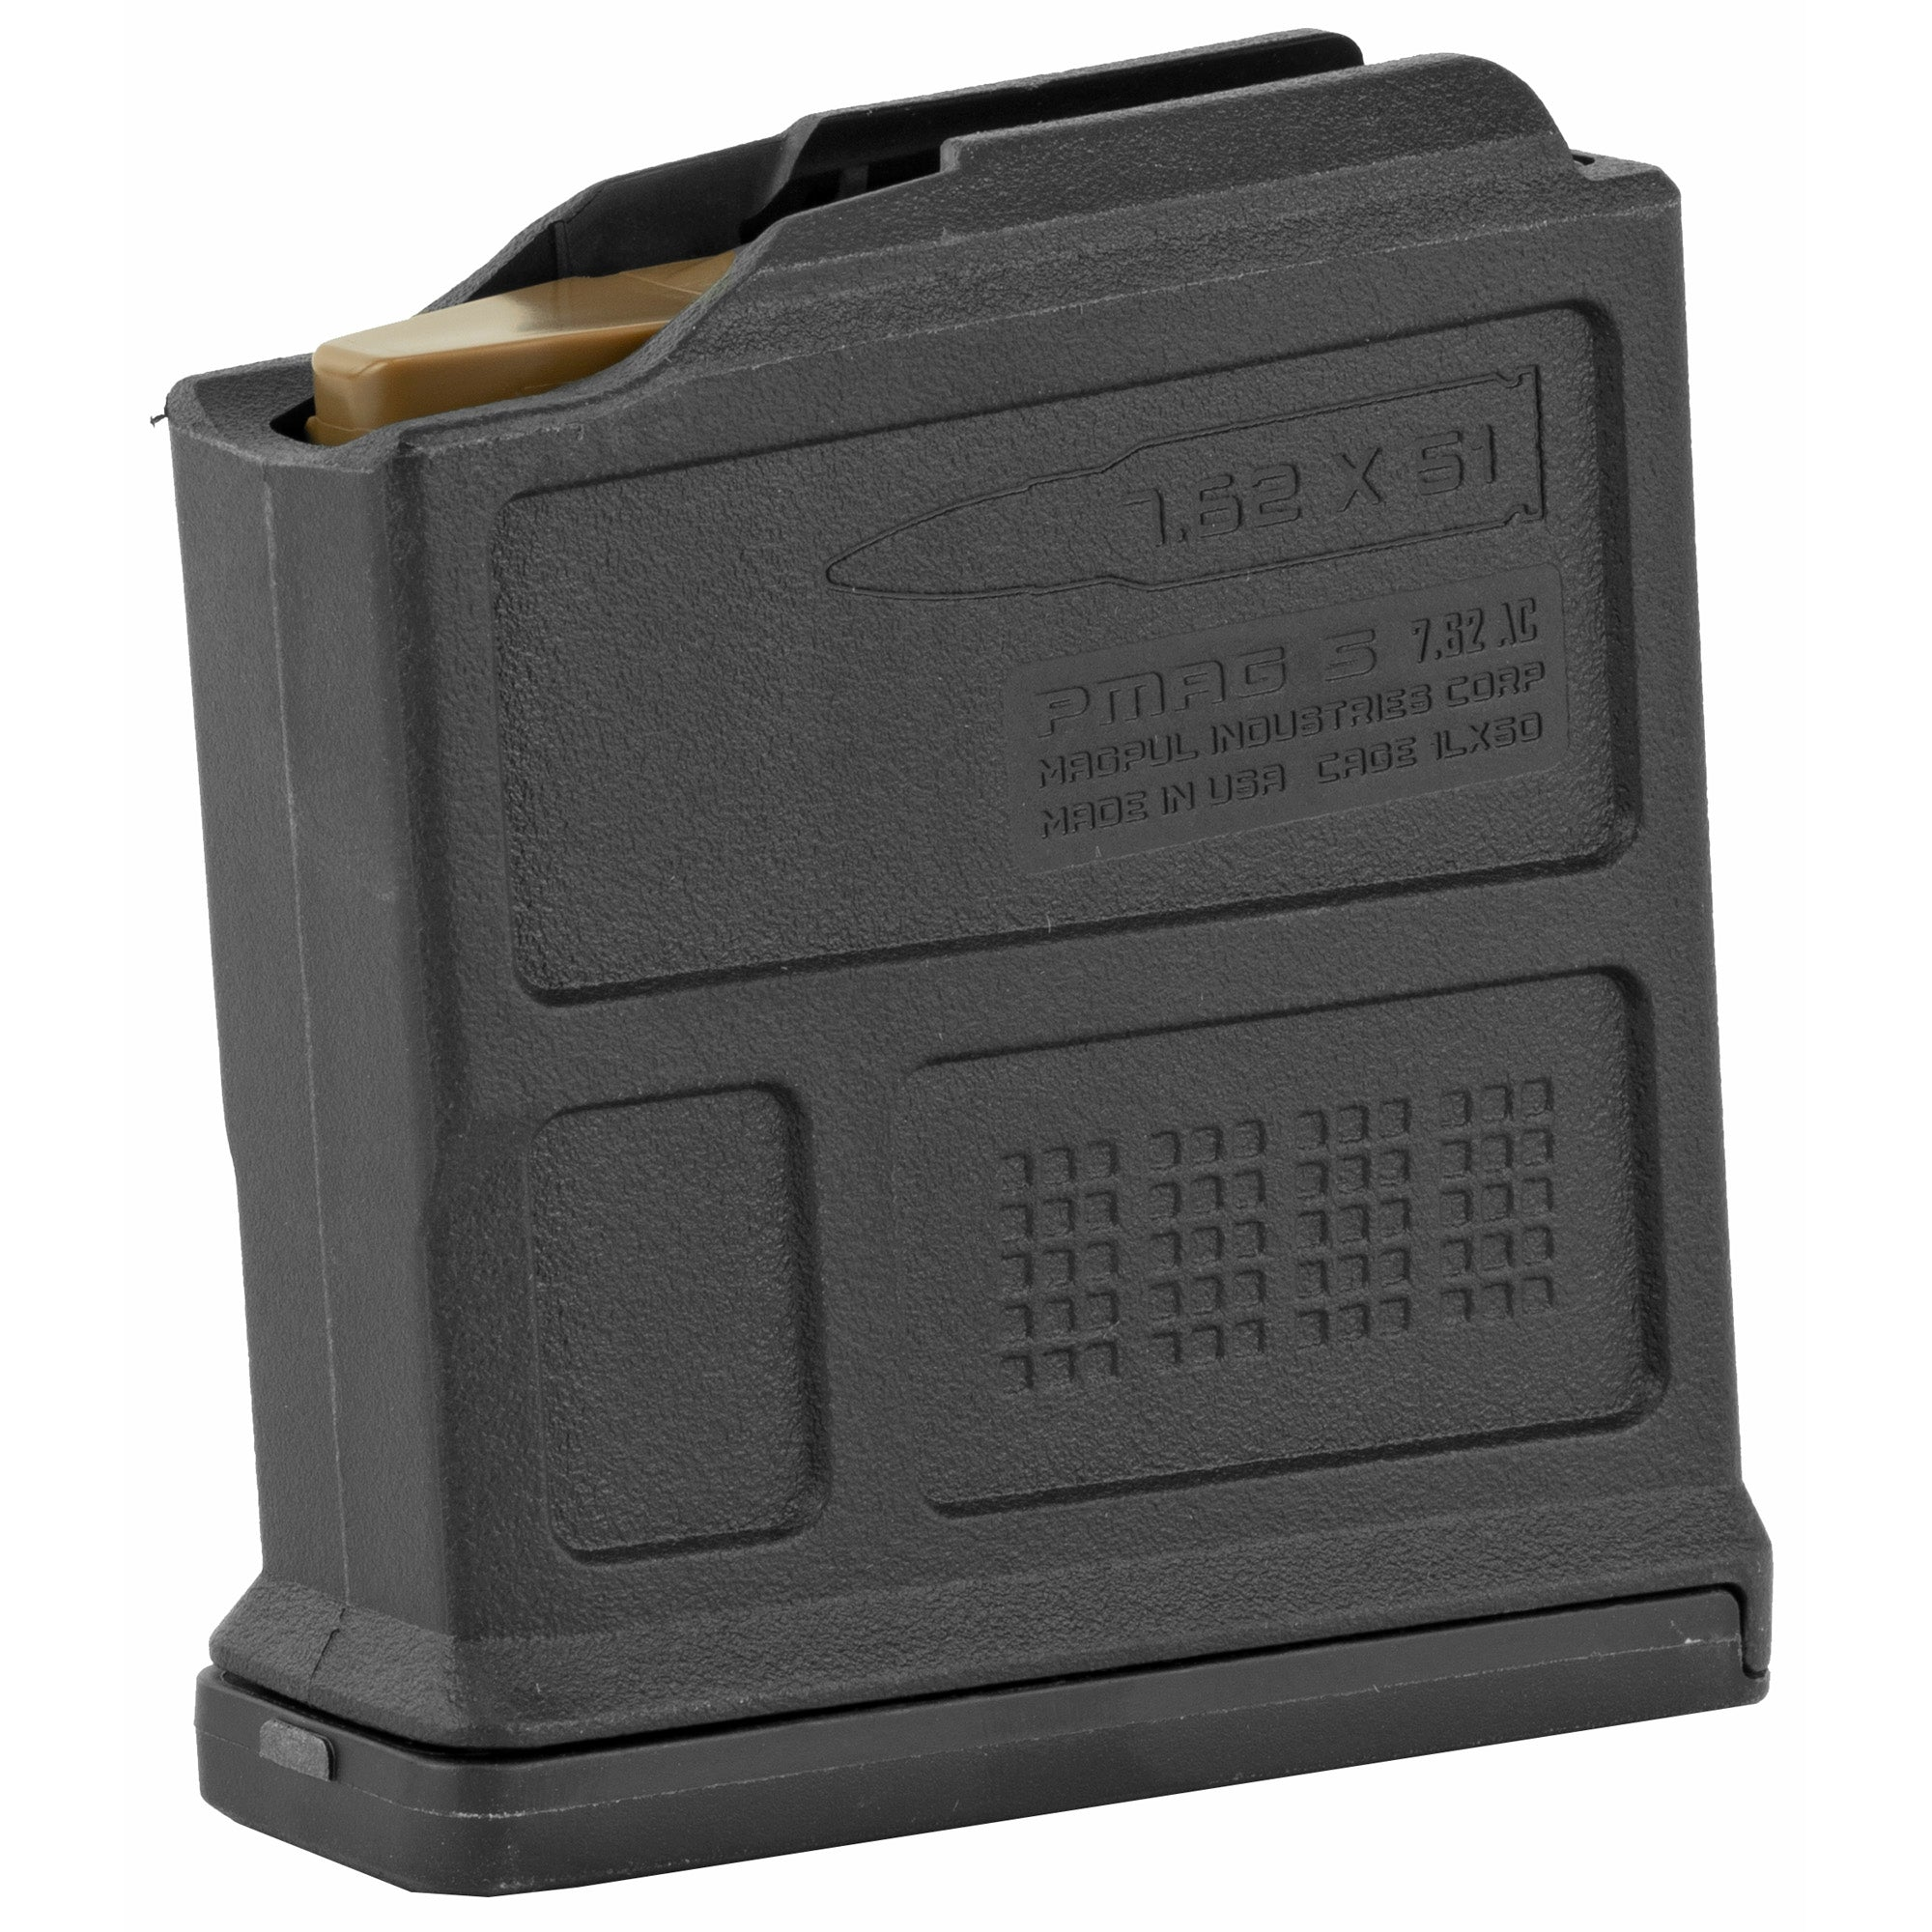 Magpul Industries, Magazine, PMAG, 308 Win/762NATO, 5Rd, Fits AICS Short Action, Black Finish